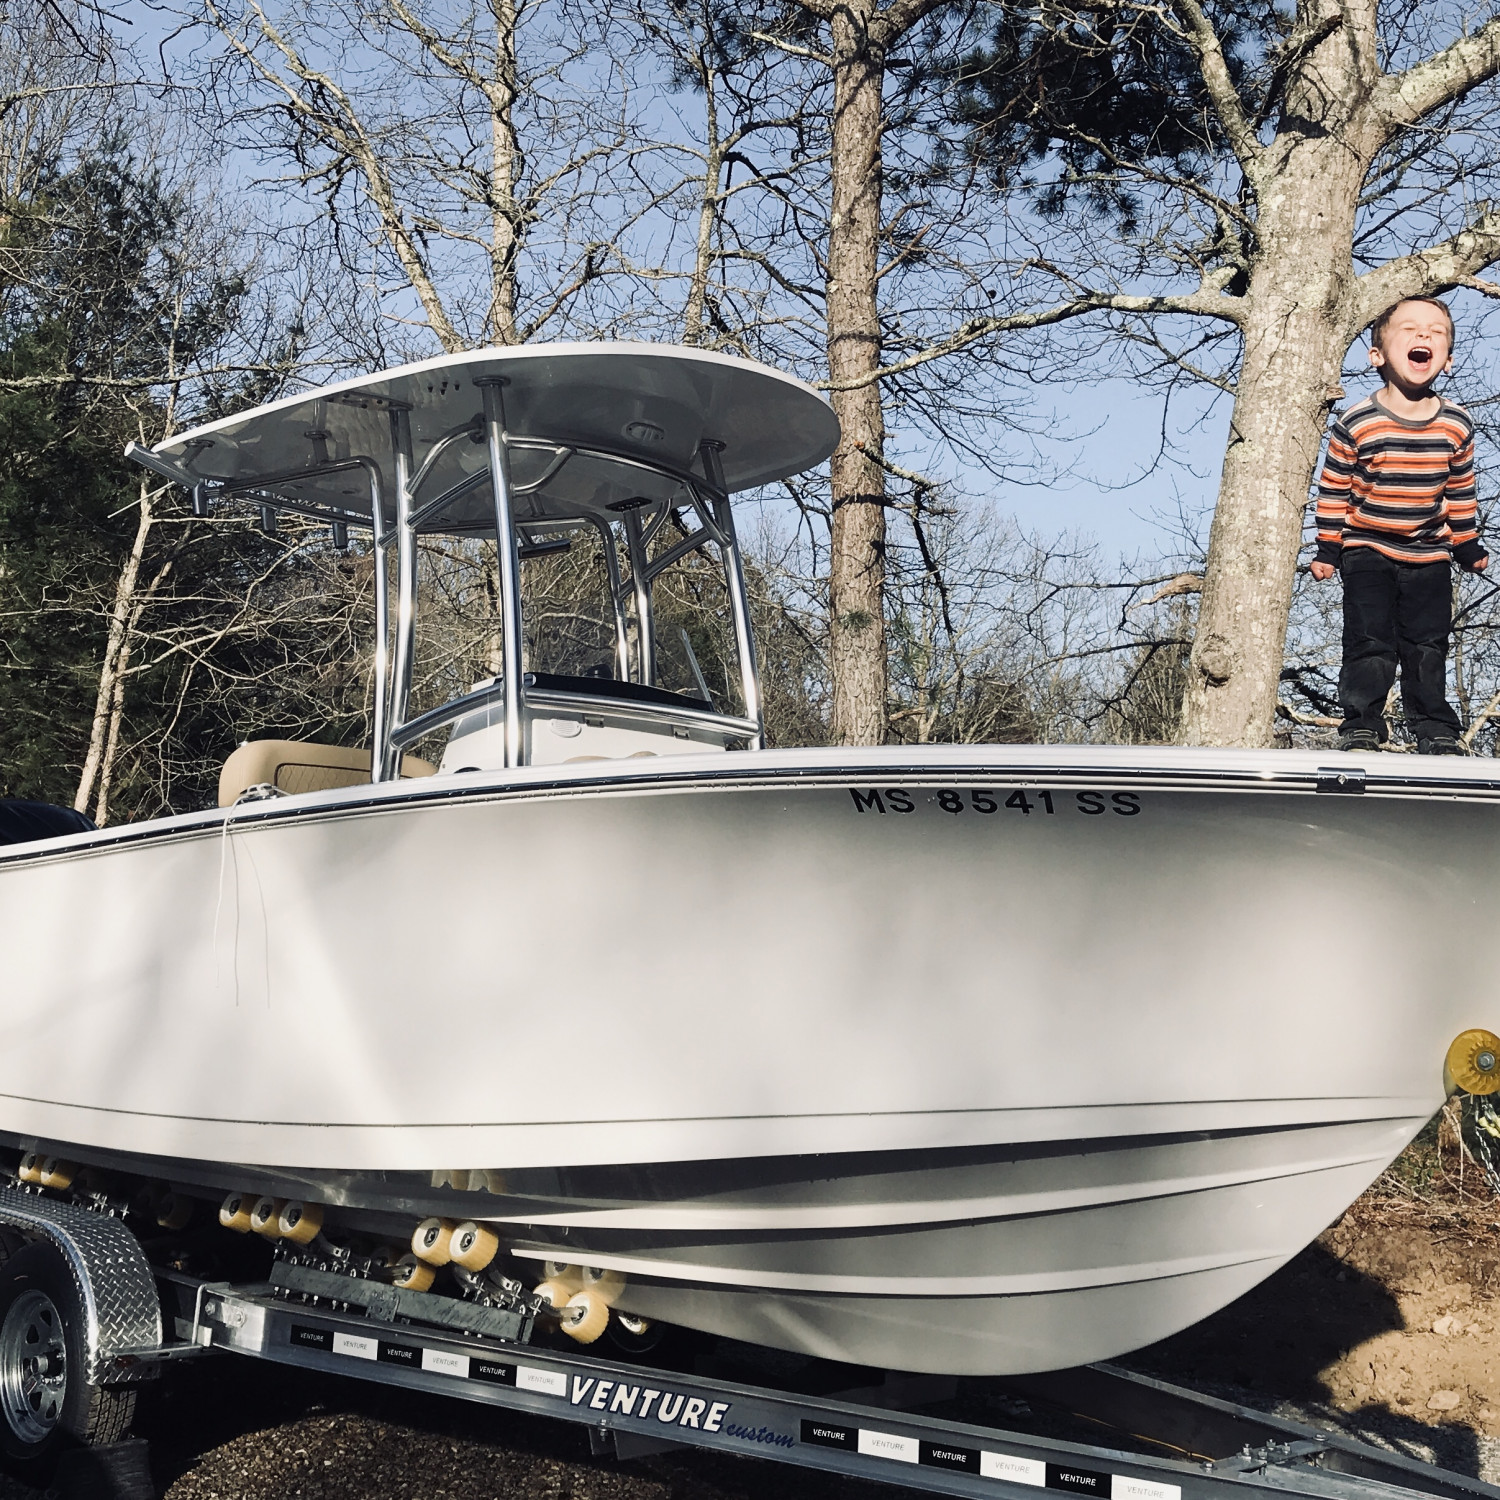 Title: Love at first sight - On board their Sportsman Open 232 Center Console - Location: Barnstable, MA. Participating in the Photo Contest #SportsmanMay2018